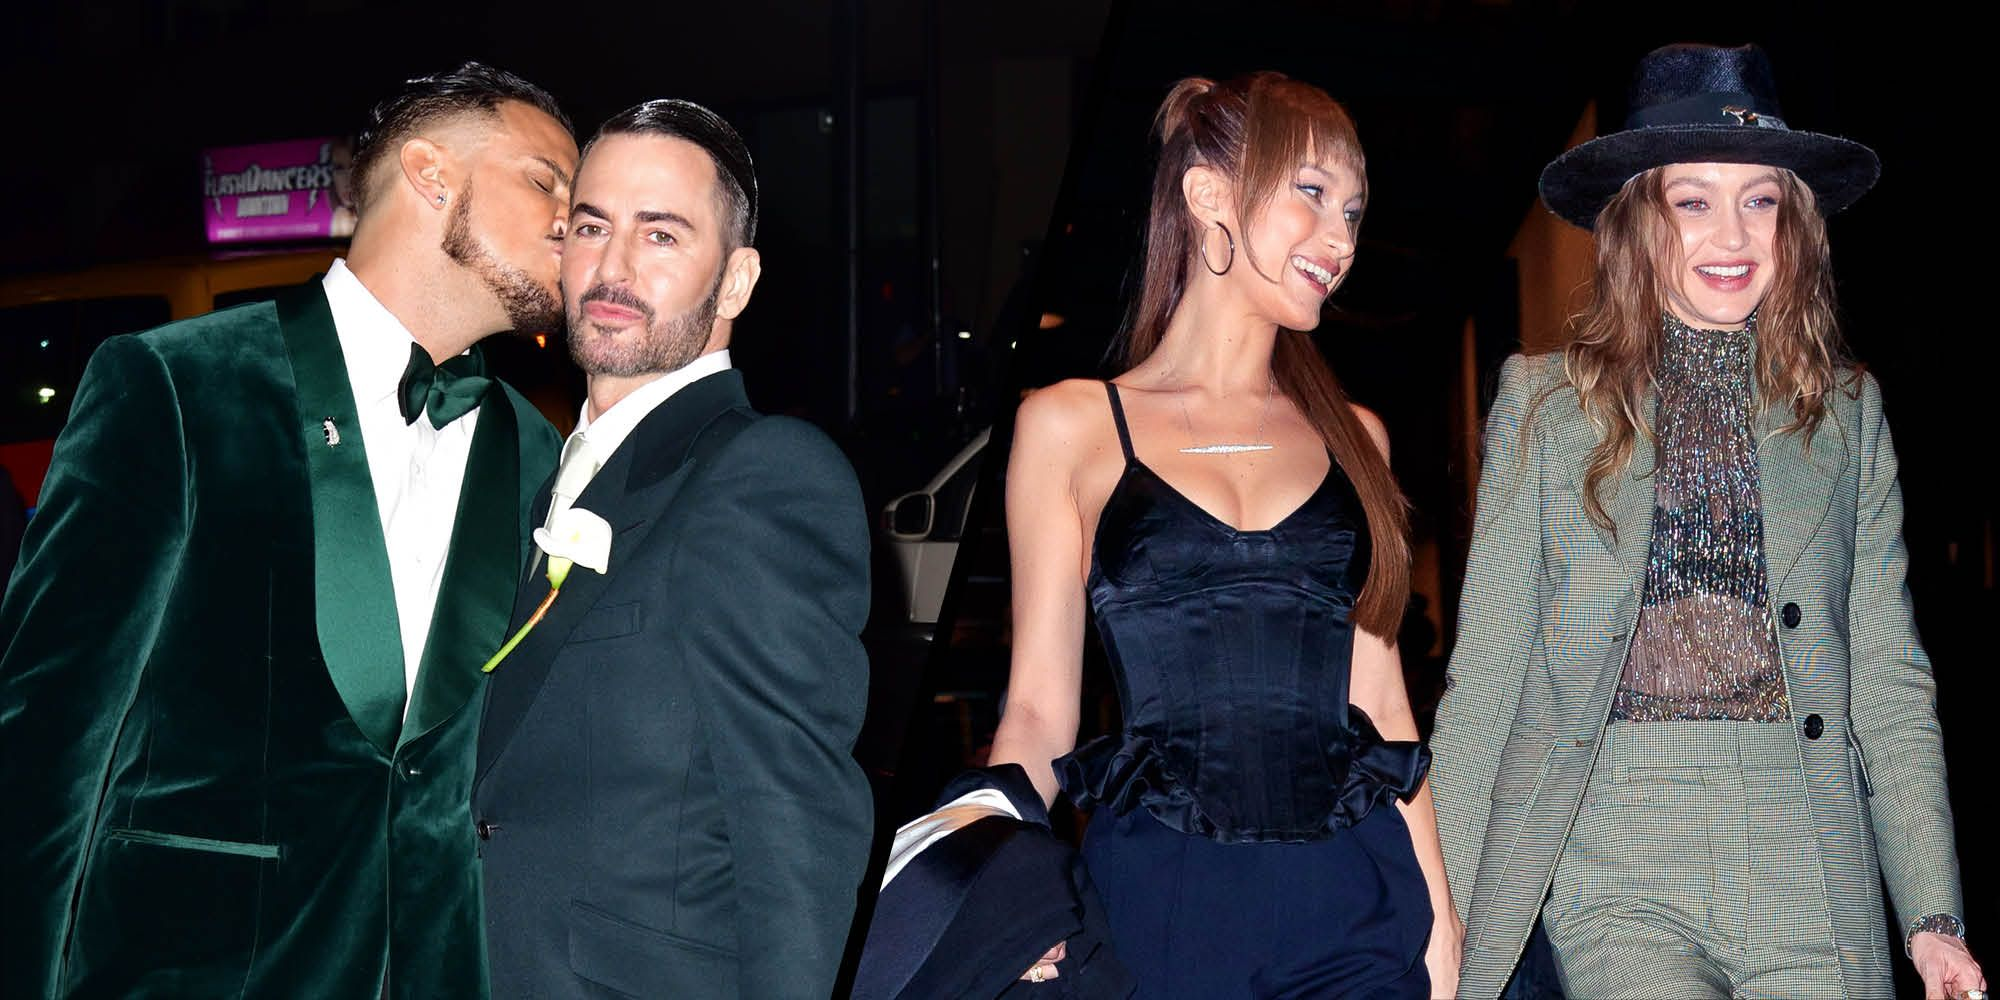 e0ea1cb84c Marc Jacobs and Char Defrancesco tie the knot in New York ceremony